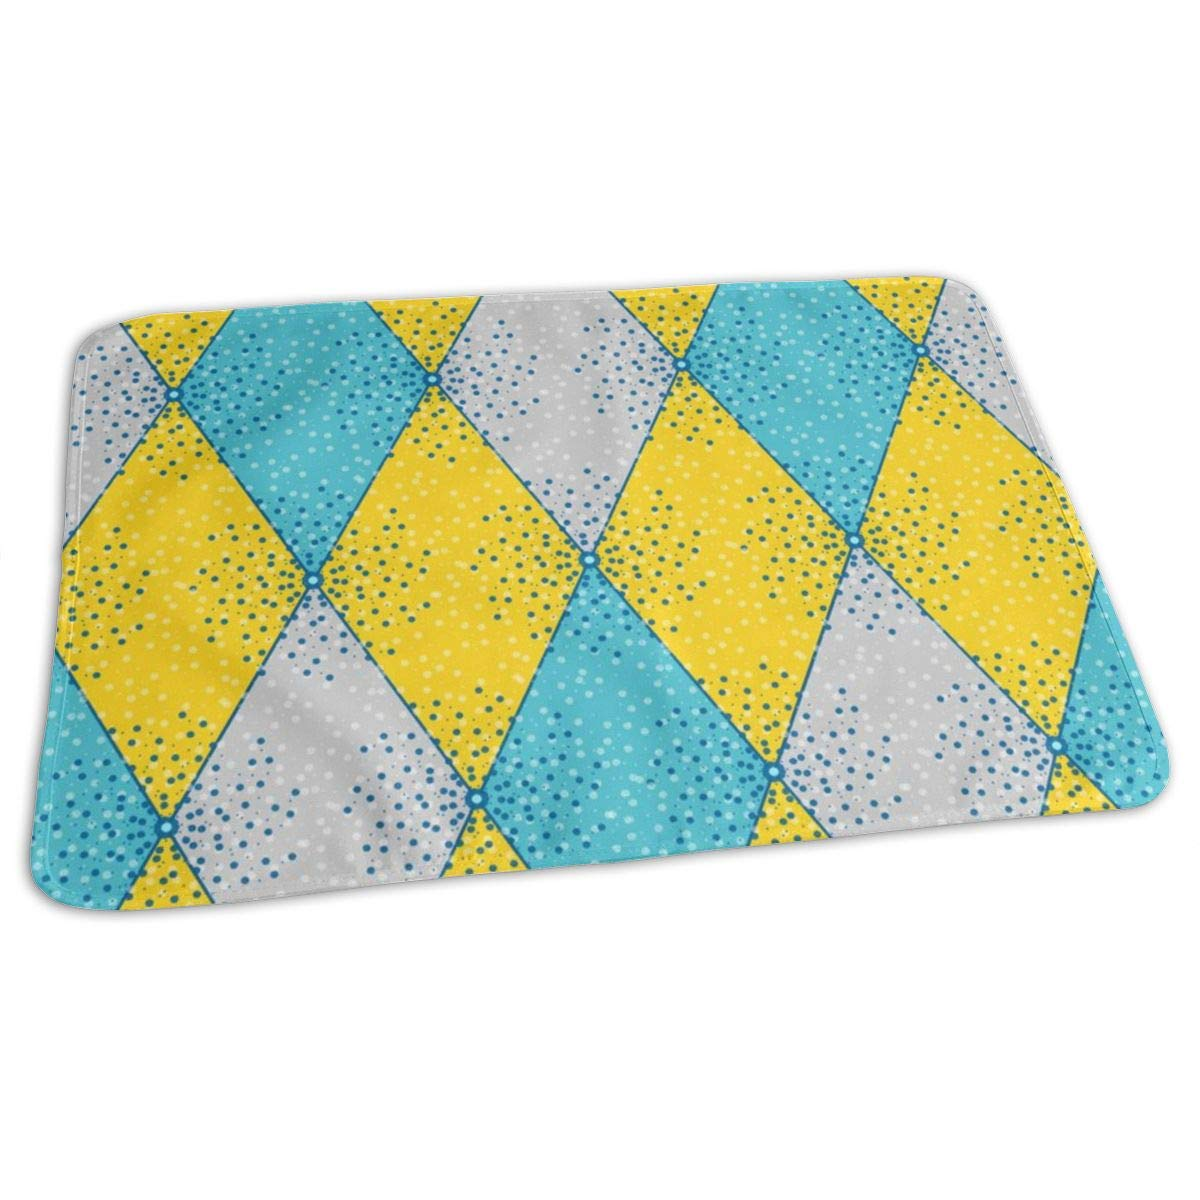 Harlequin Diamonds In Yellow, Gray, Aqua For Small Bunting Baby Portable Reusable Changing Pad Mat 19.7x27.5 inch